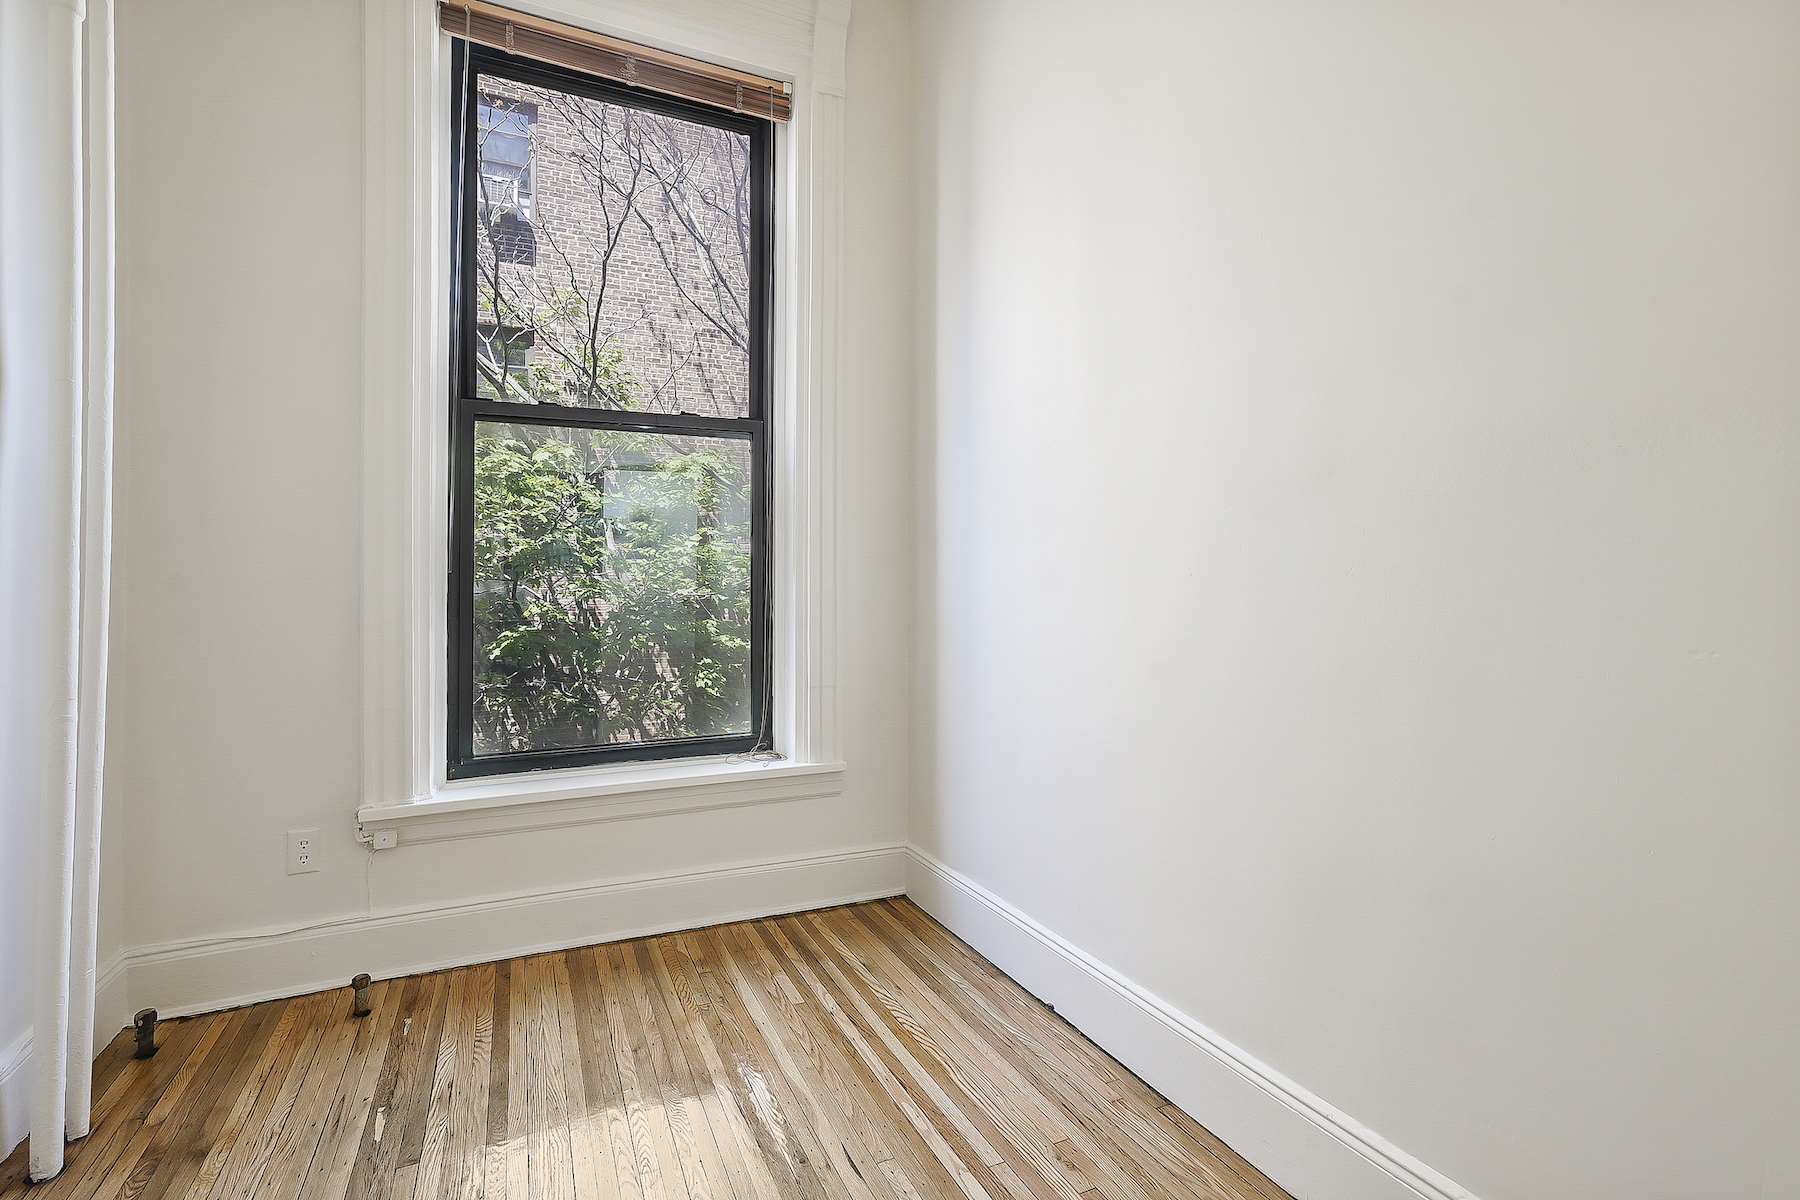 Additional photo for property listing at Beautiful One bedroom Co-op in Brownstone 20 8th Avenue Apt. 2-B 布鲁克林, 纽约州 11217 美国